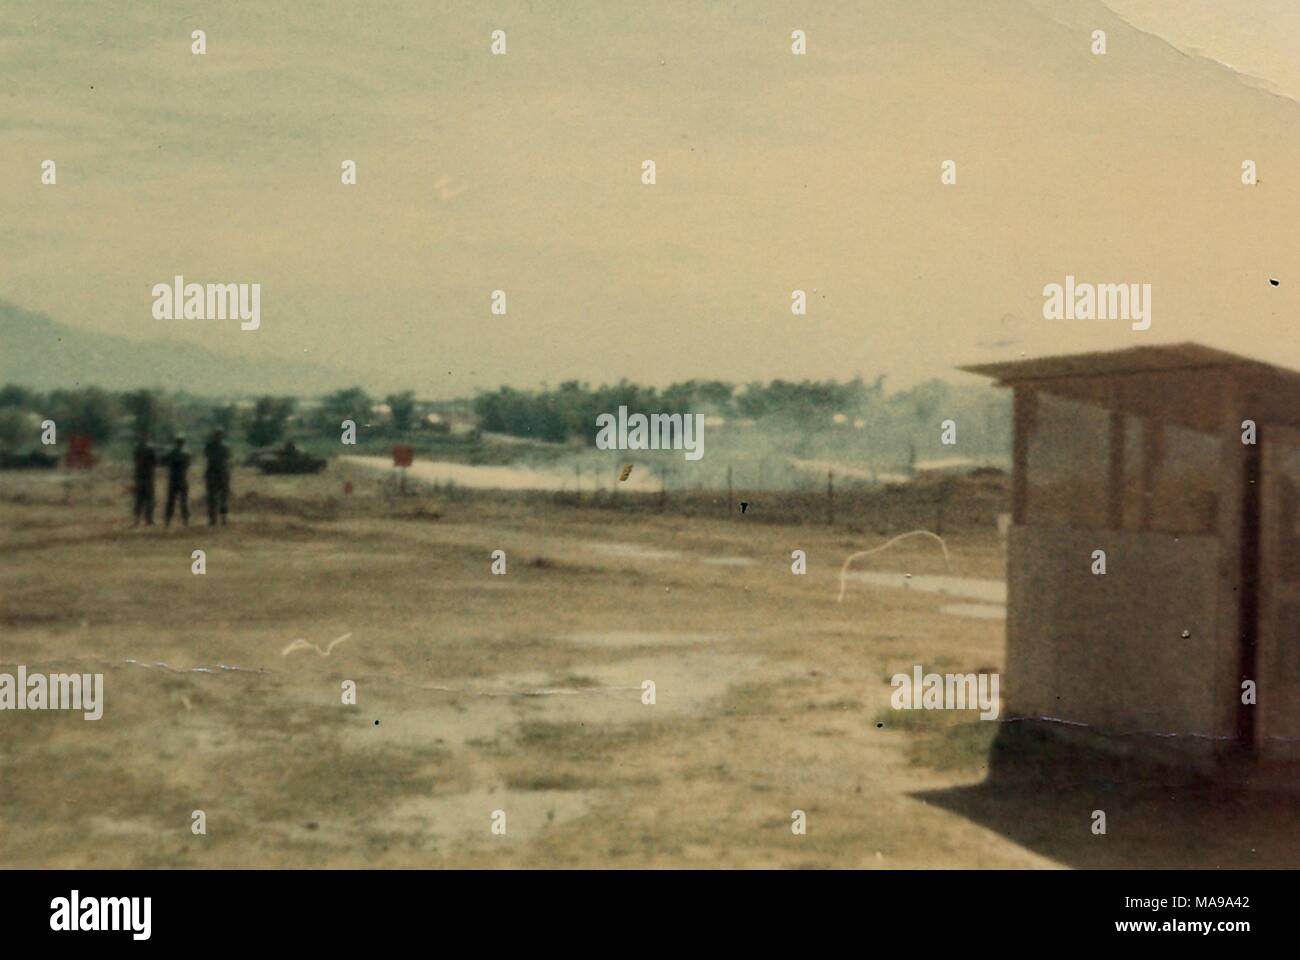 Color photograph showing a guard post at the right of a muddy field, with three figures (presumably soldiers) flags, and a tank in the distance, photographed in Vietnam during the Vietnam War, 1968. () - Stock Image